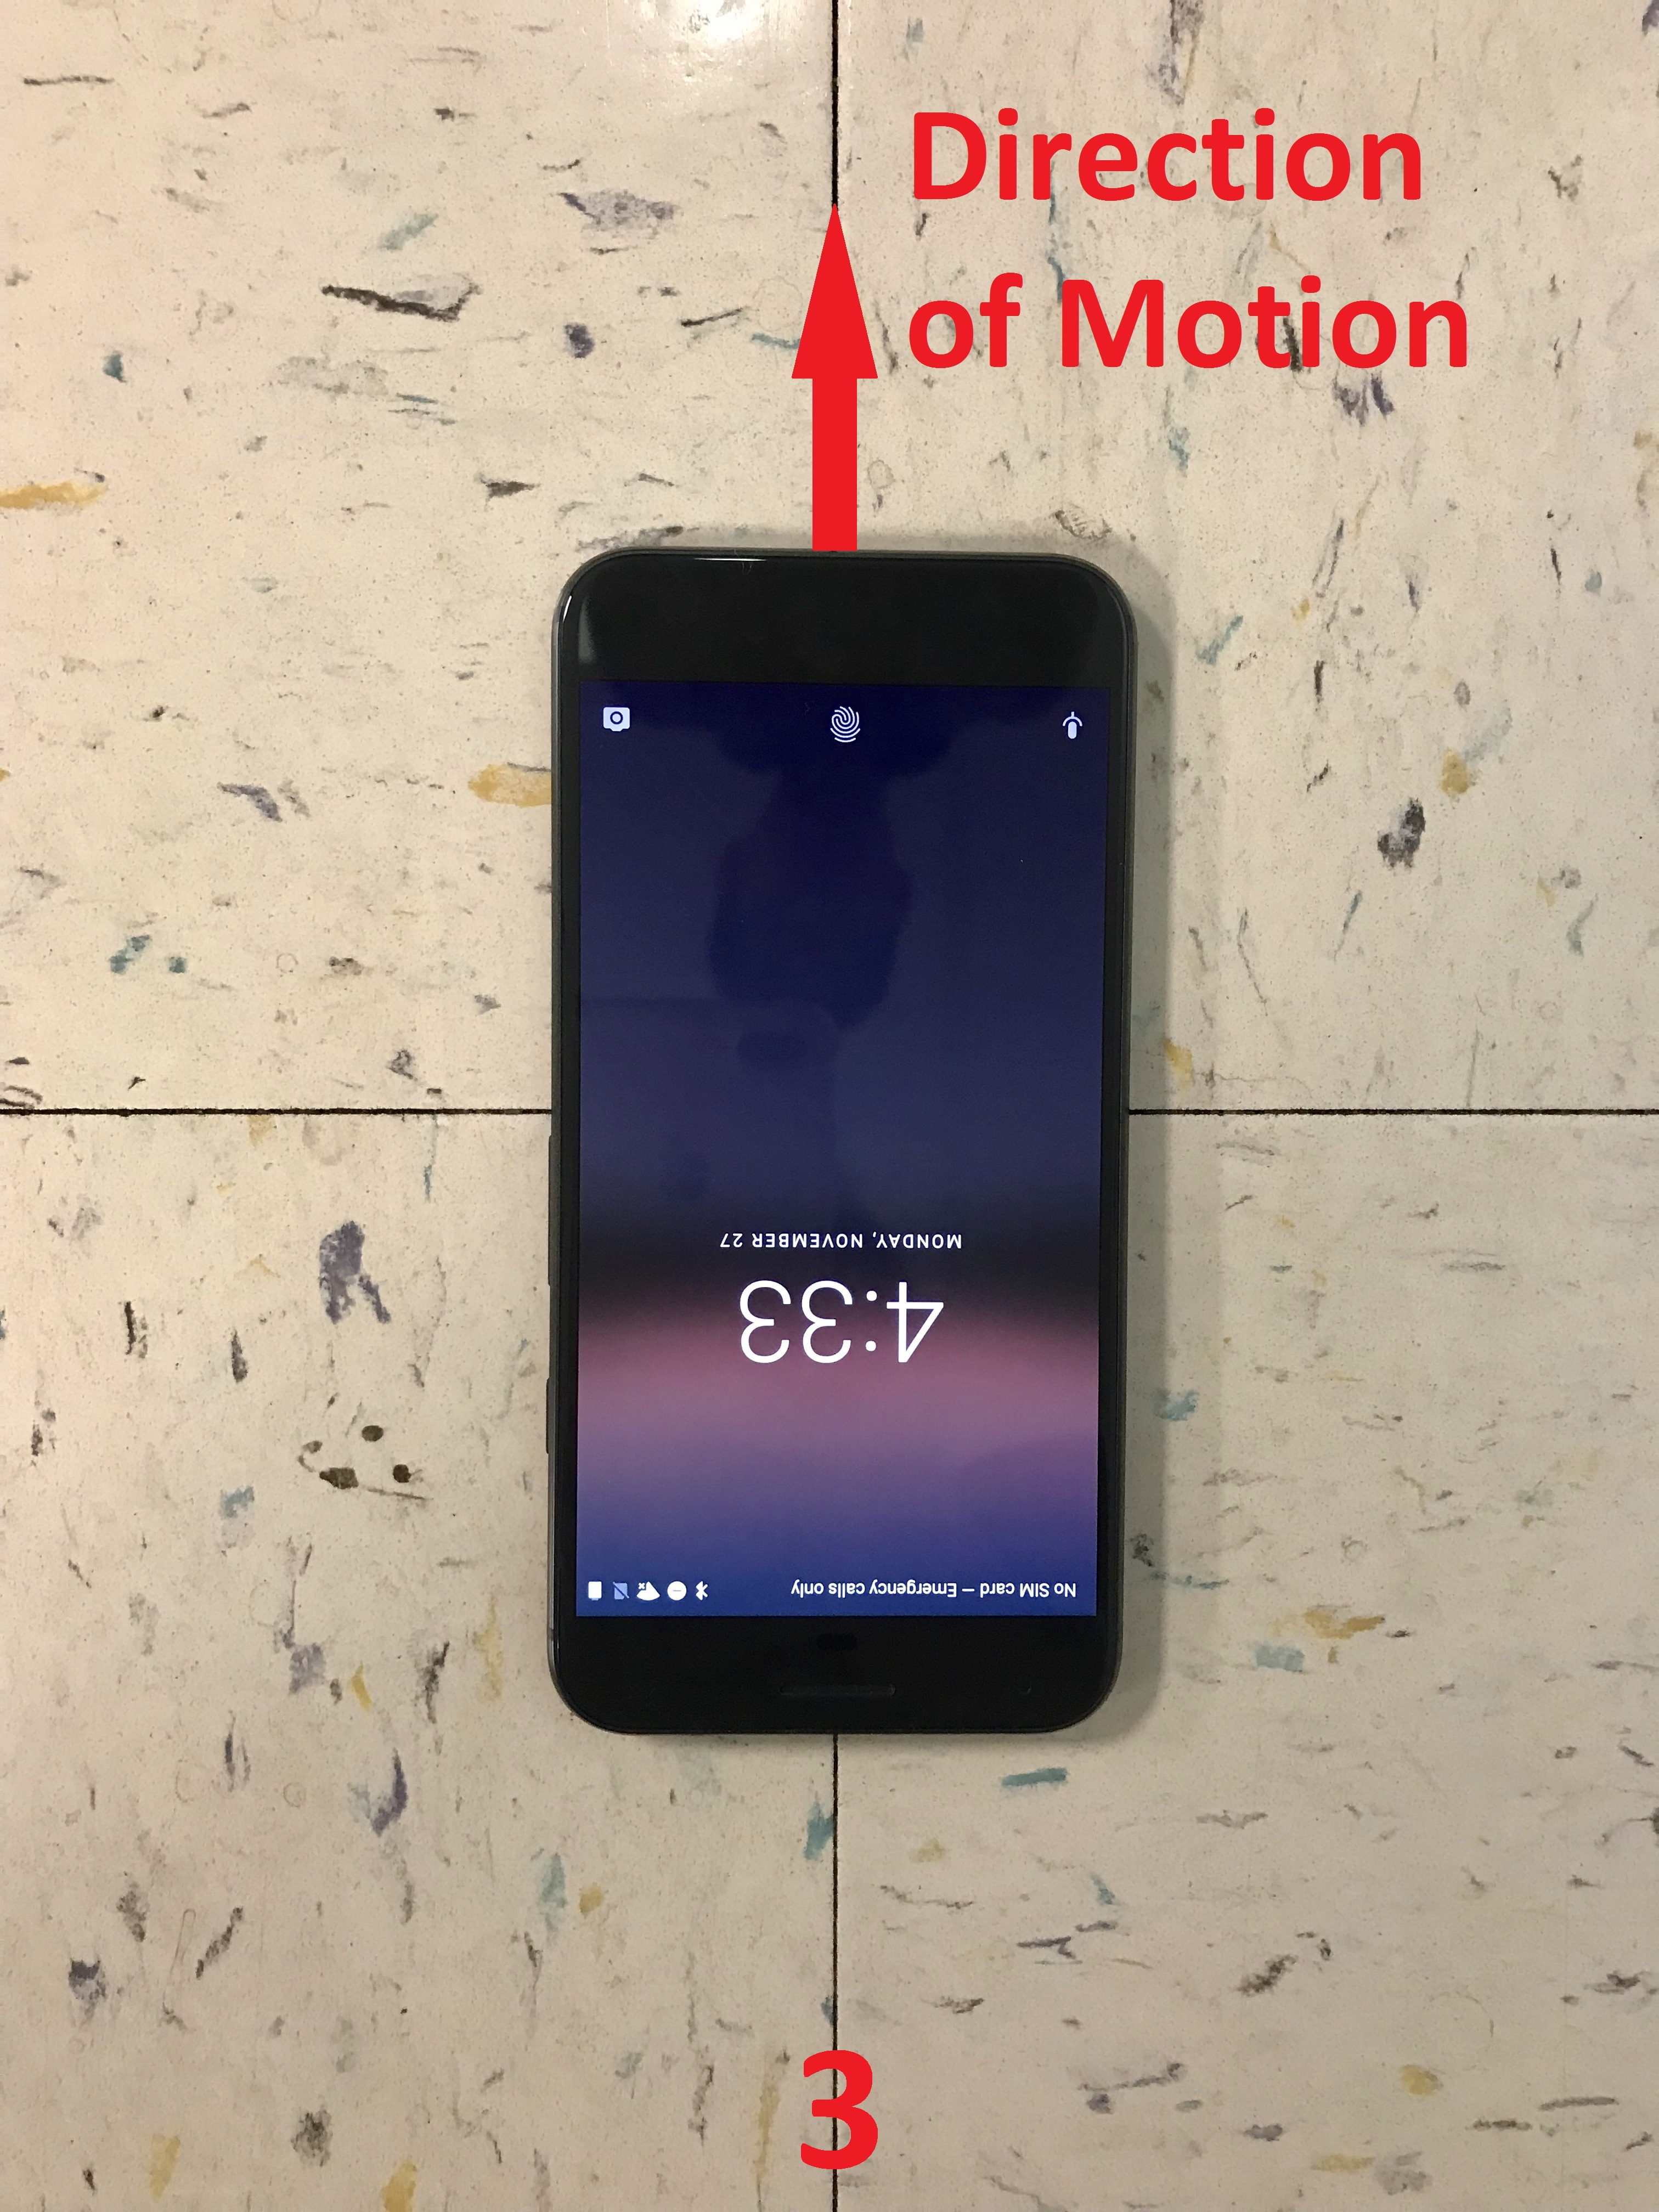 The y-axis of the phone pointing in the opposite to the direction of motion